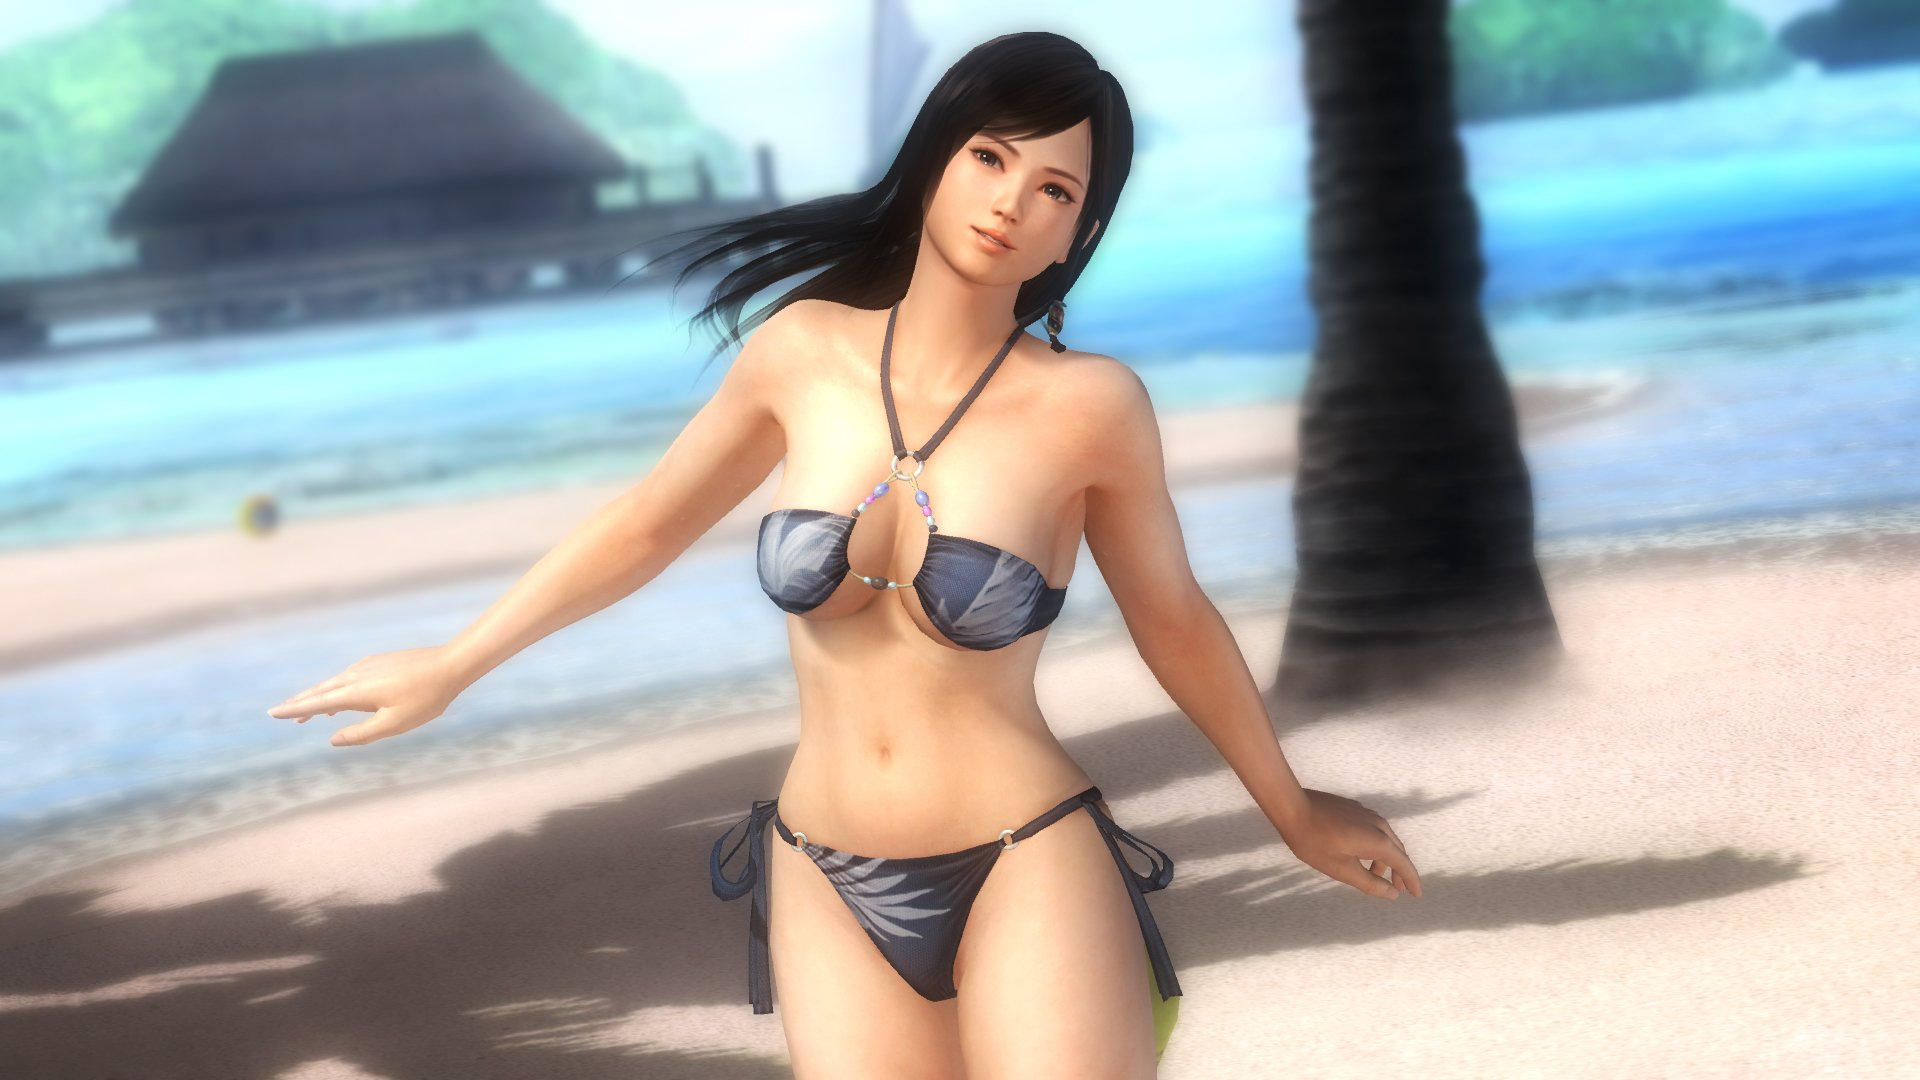 23/01/2013 - Zack Island & Swimsuit Costumes Screens - 8